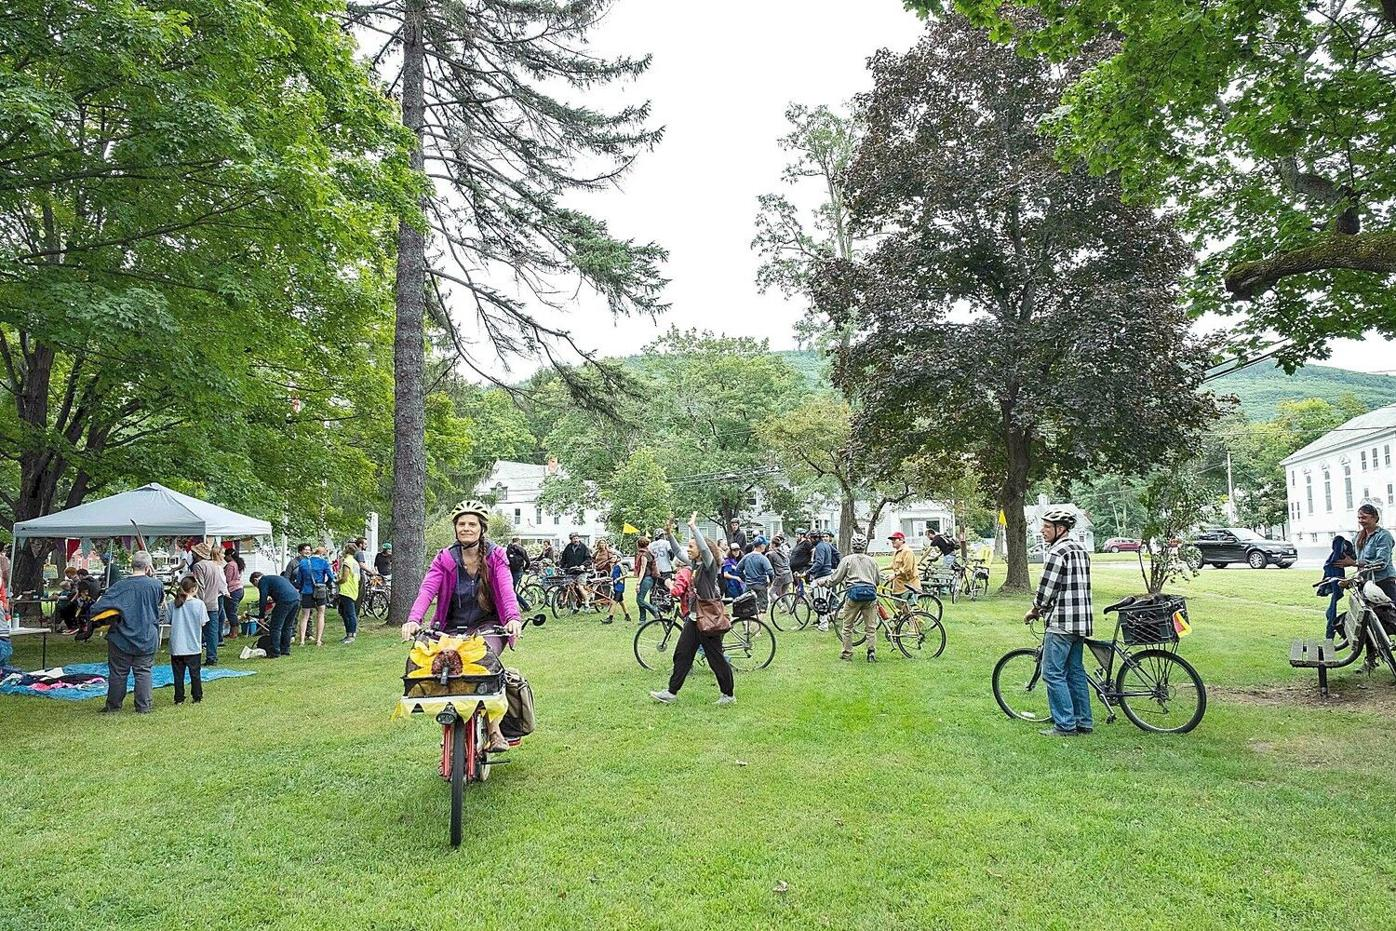 Pedal it forward for the planet